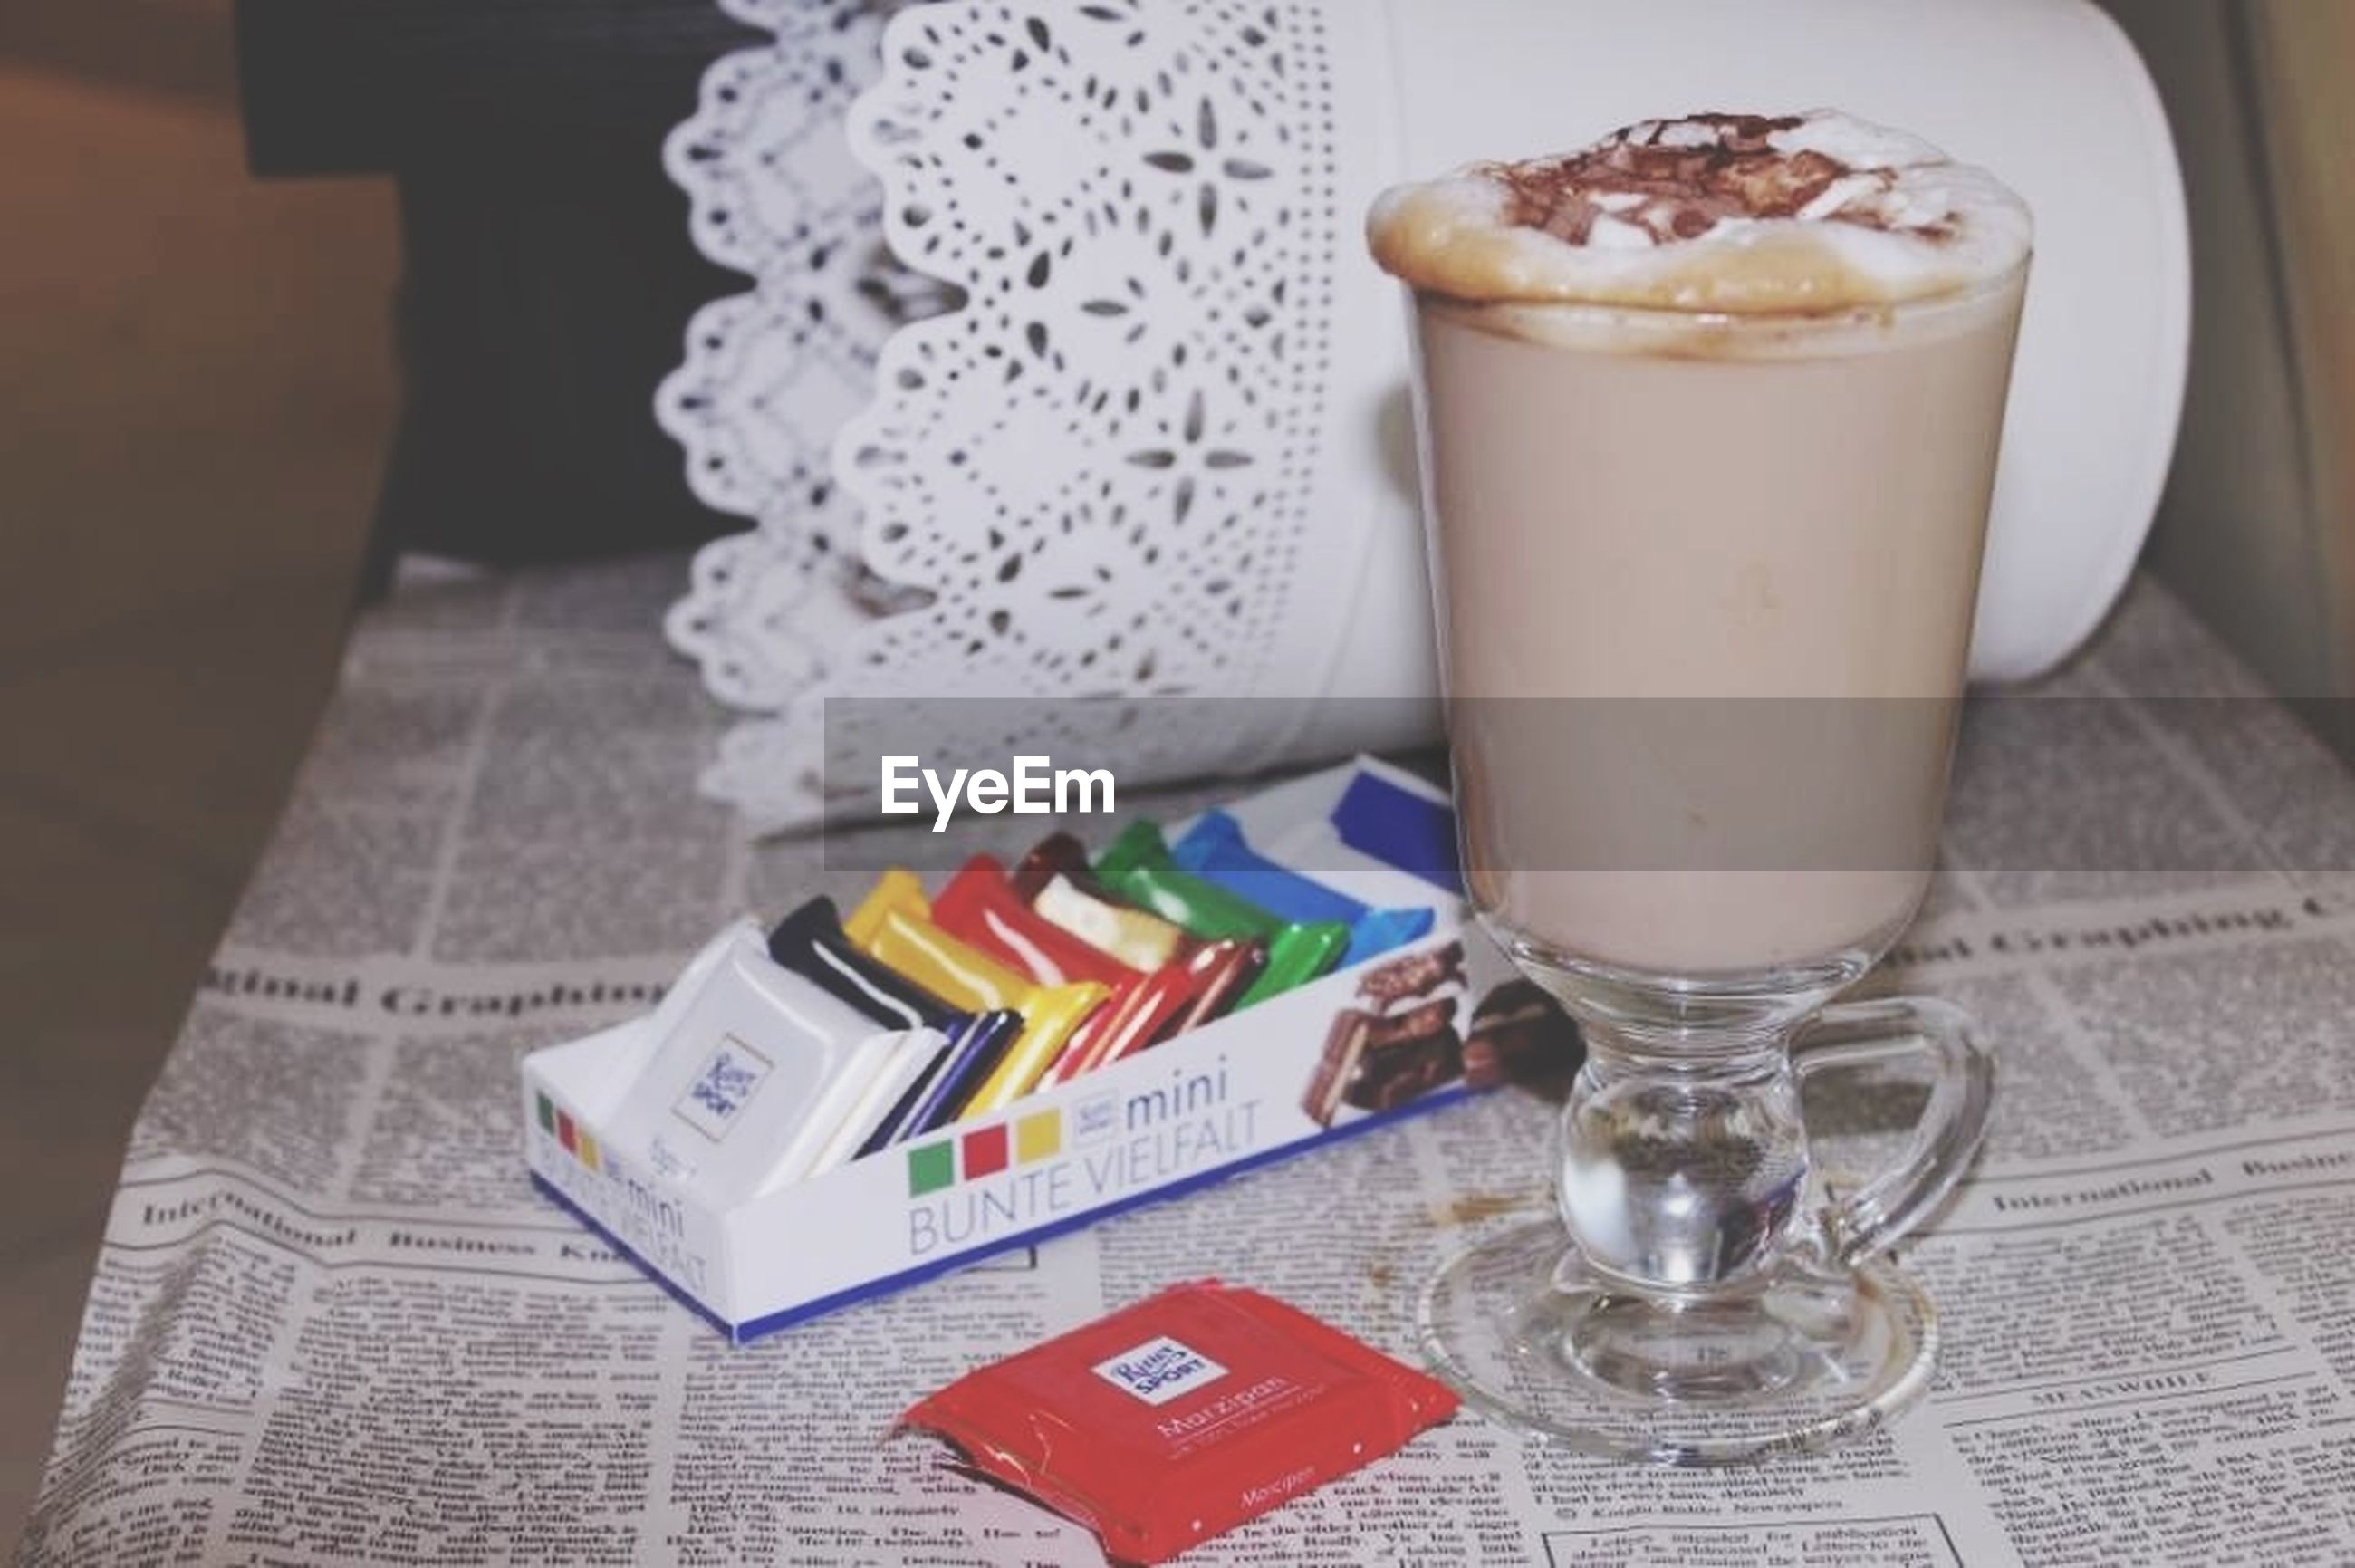 indoors, food and drink, table, still life, sweet food, drink, freshness, refreshment, coffee cup, food, dessert, close-up, high angle view, coffee - drink, plate, unhealthy eating, ready-to-eat, indulgence, cake, white color